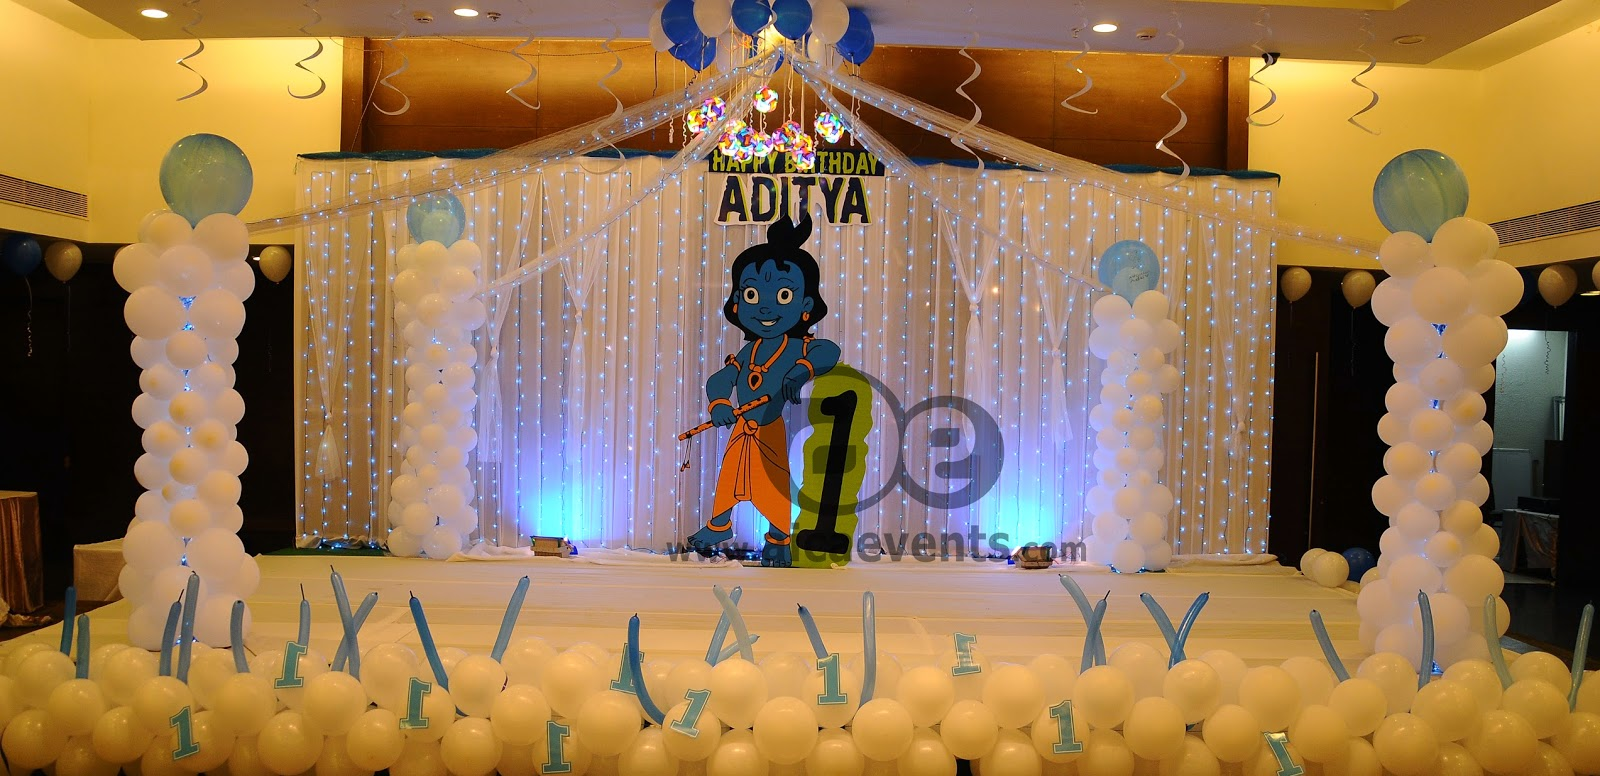 Aicaevents India Krishna Theme Birthday Party Decorations